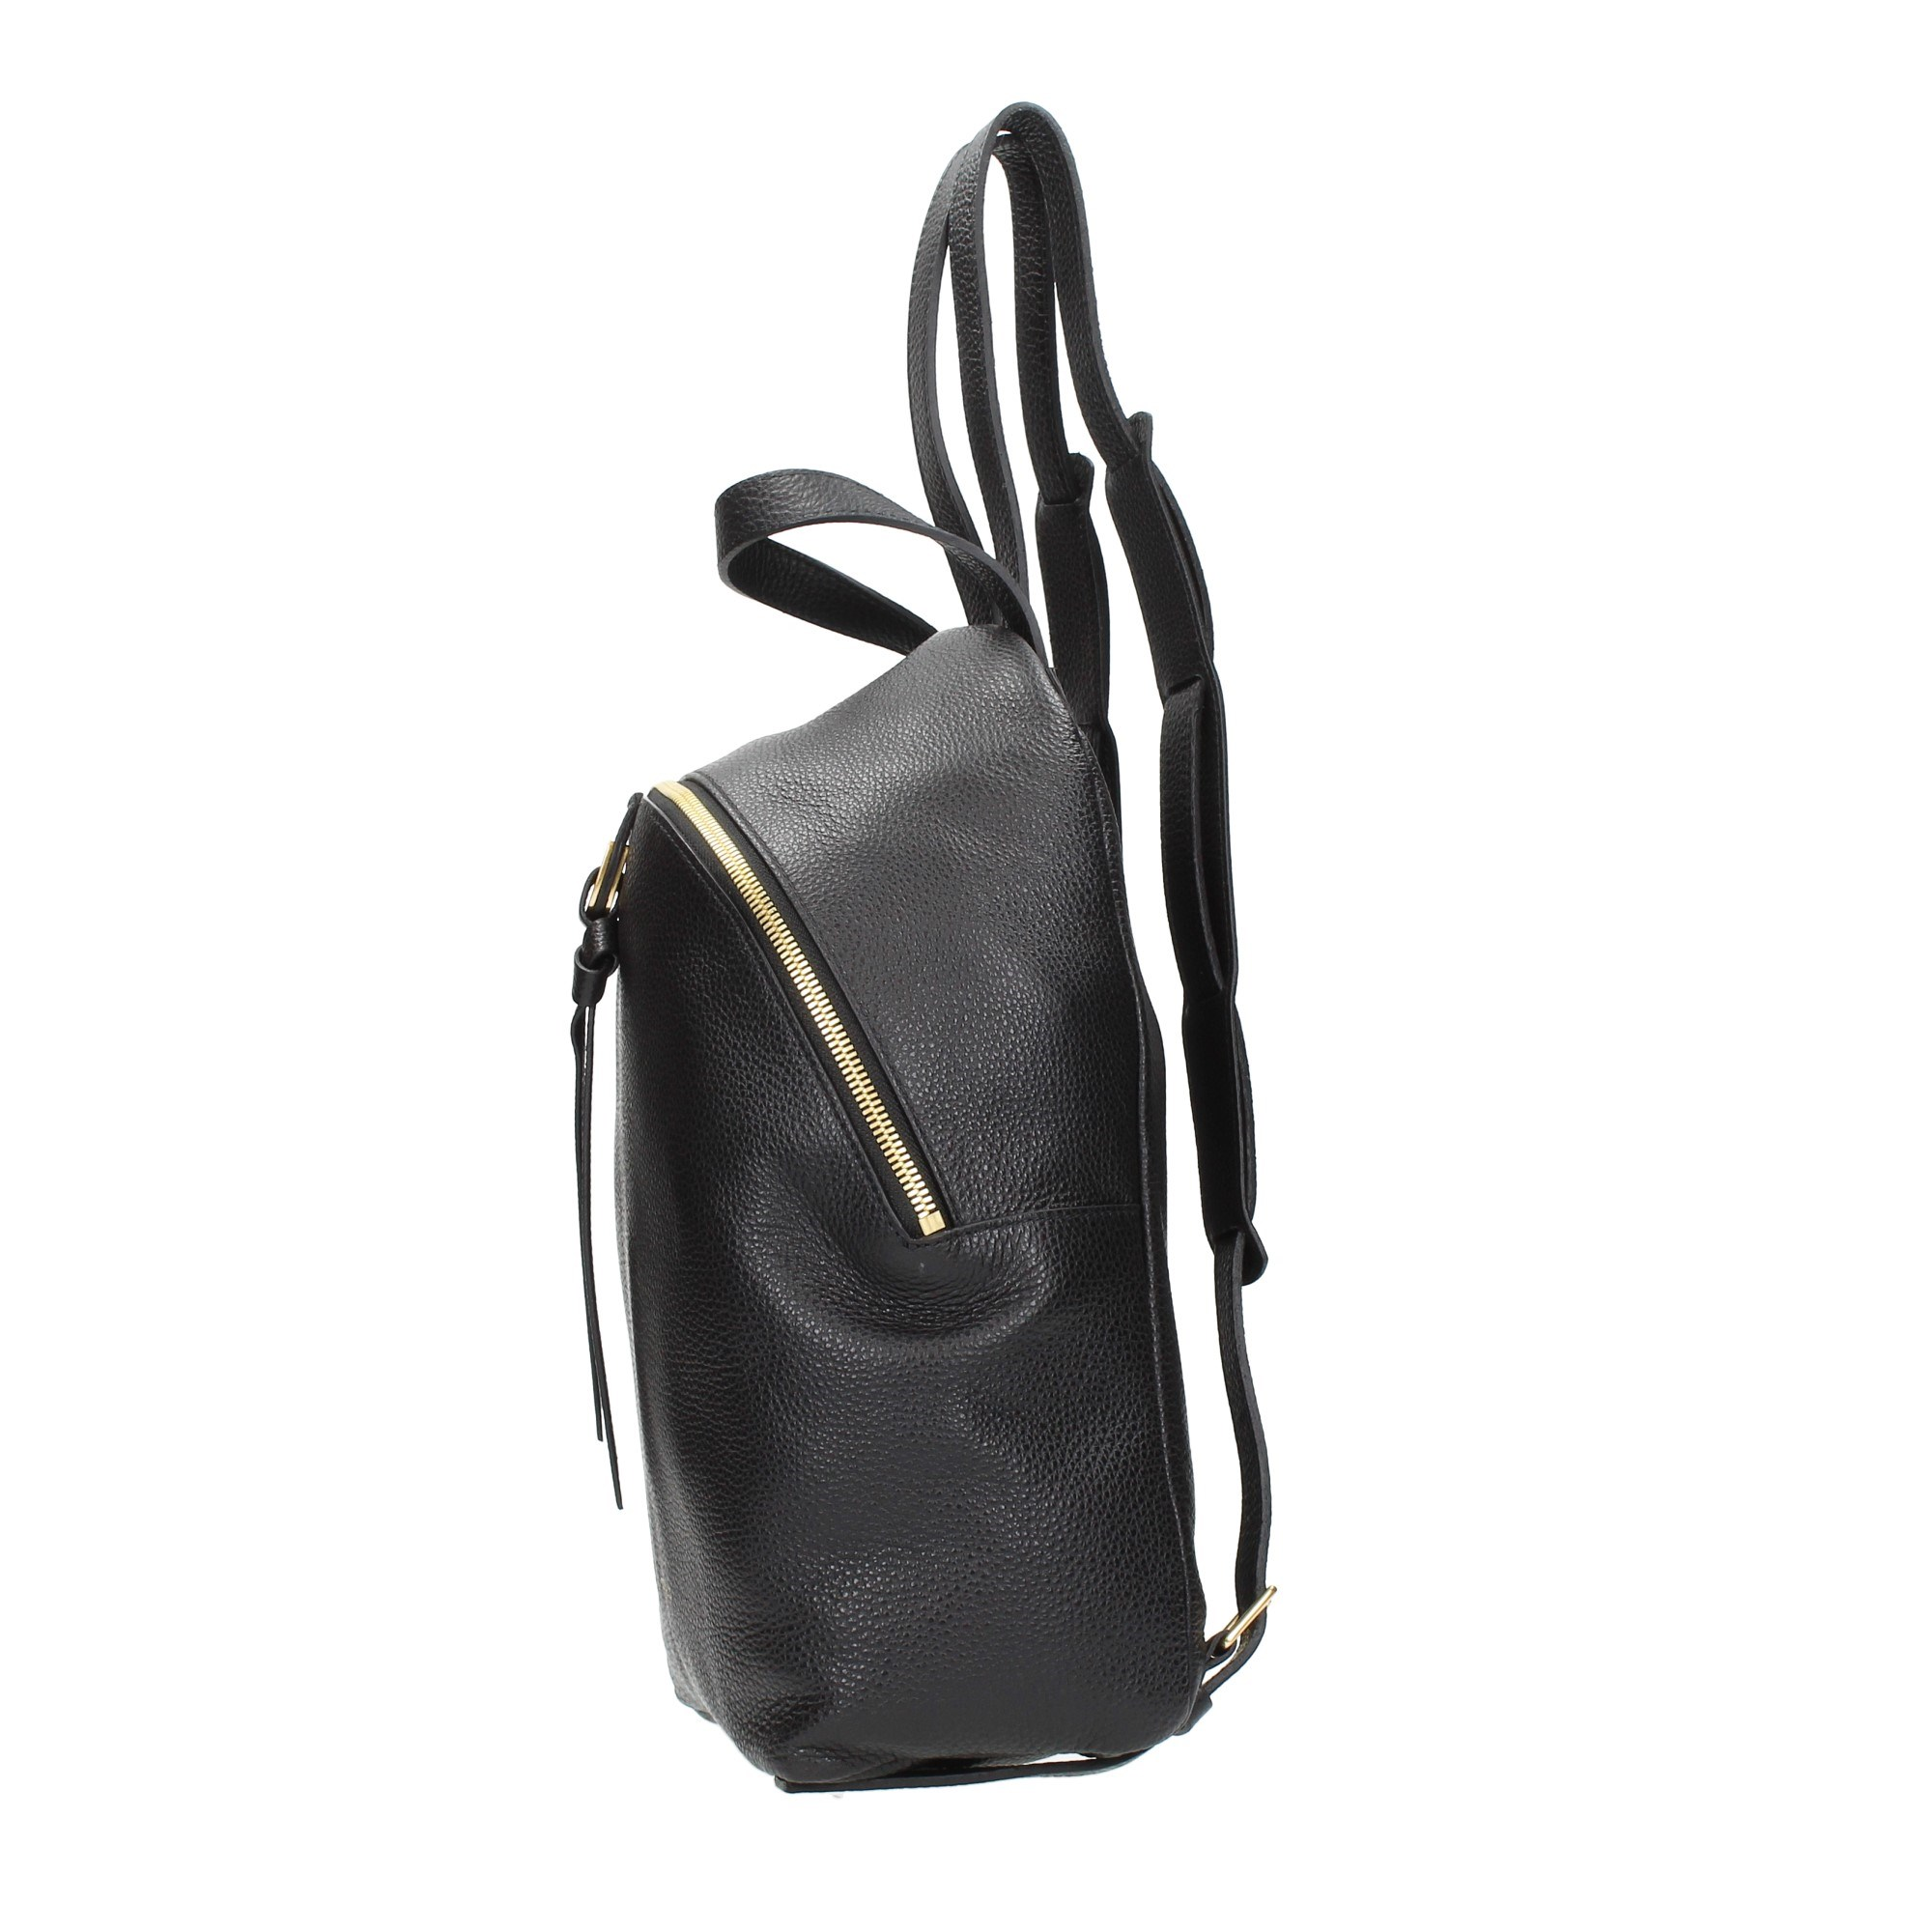 Coccinelle Accessories Women Backpack Black GL5 140101